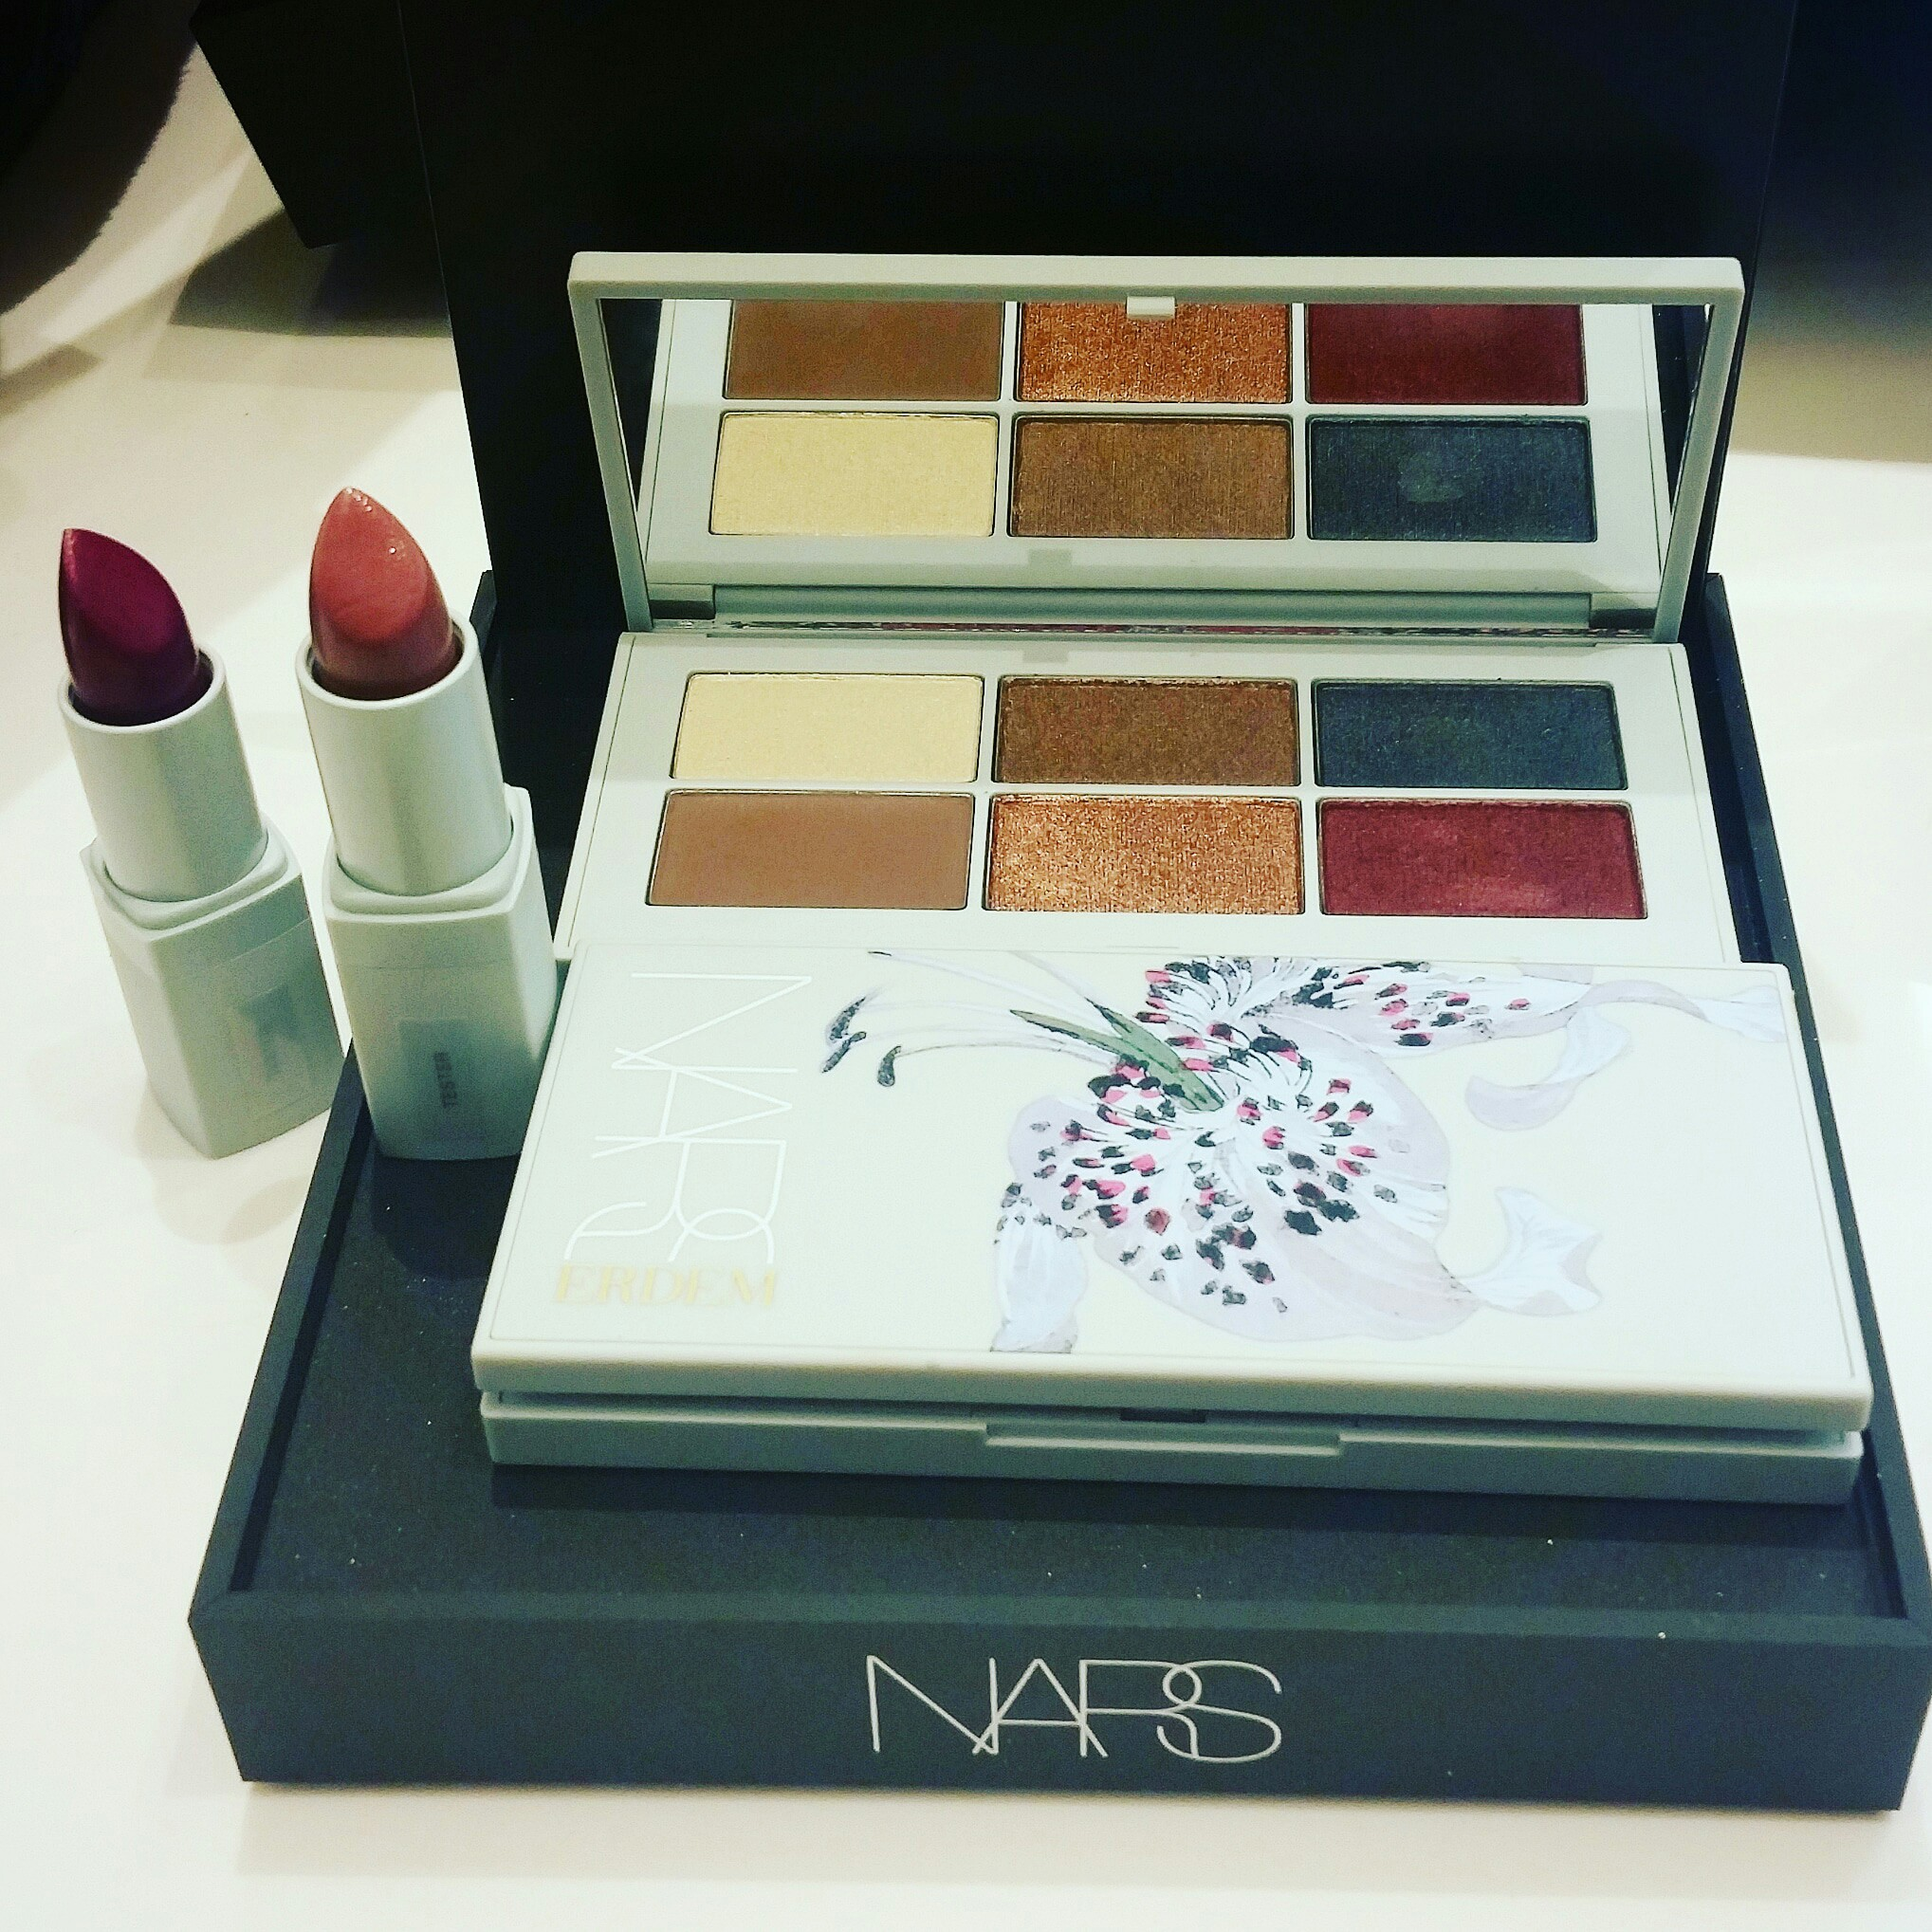 NARS, Erdem, Strange Flowers Collection, inandoutof vegas, In and Out of Vegas